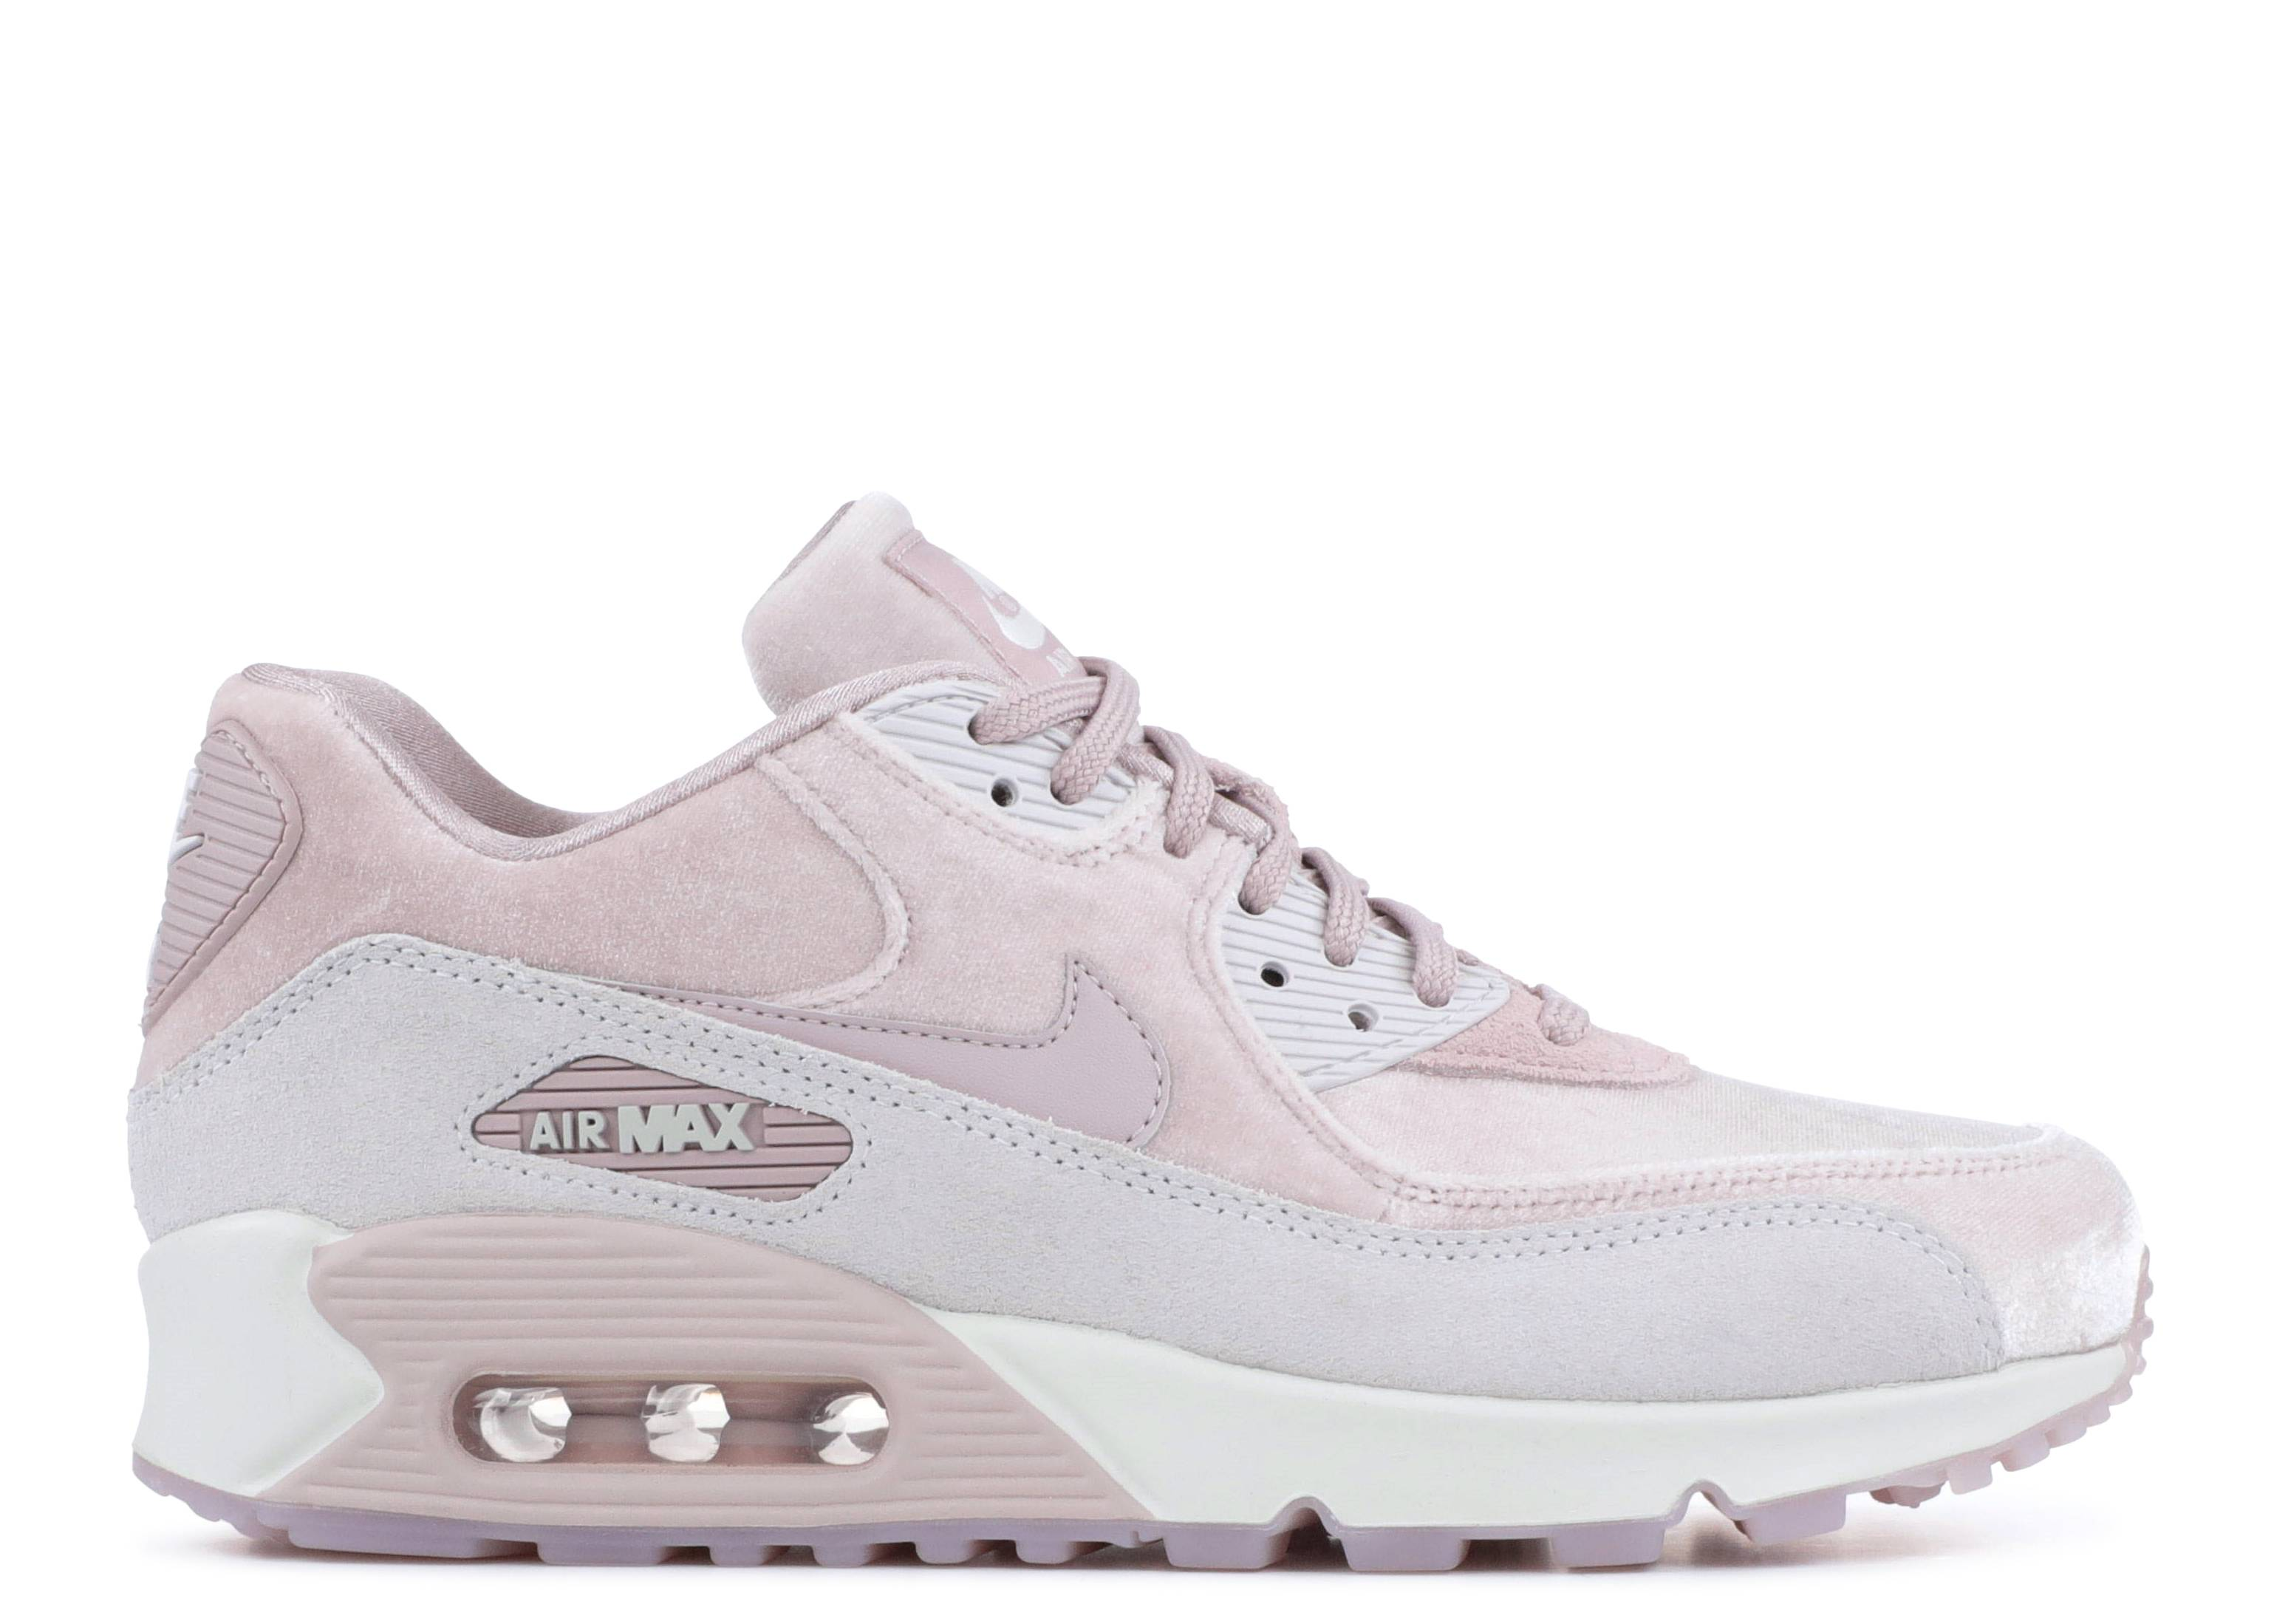 Nike Wmns AIR MAX 90 LX Particle Rose Particle Rose Vast Grey